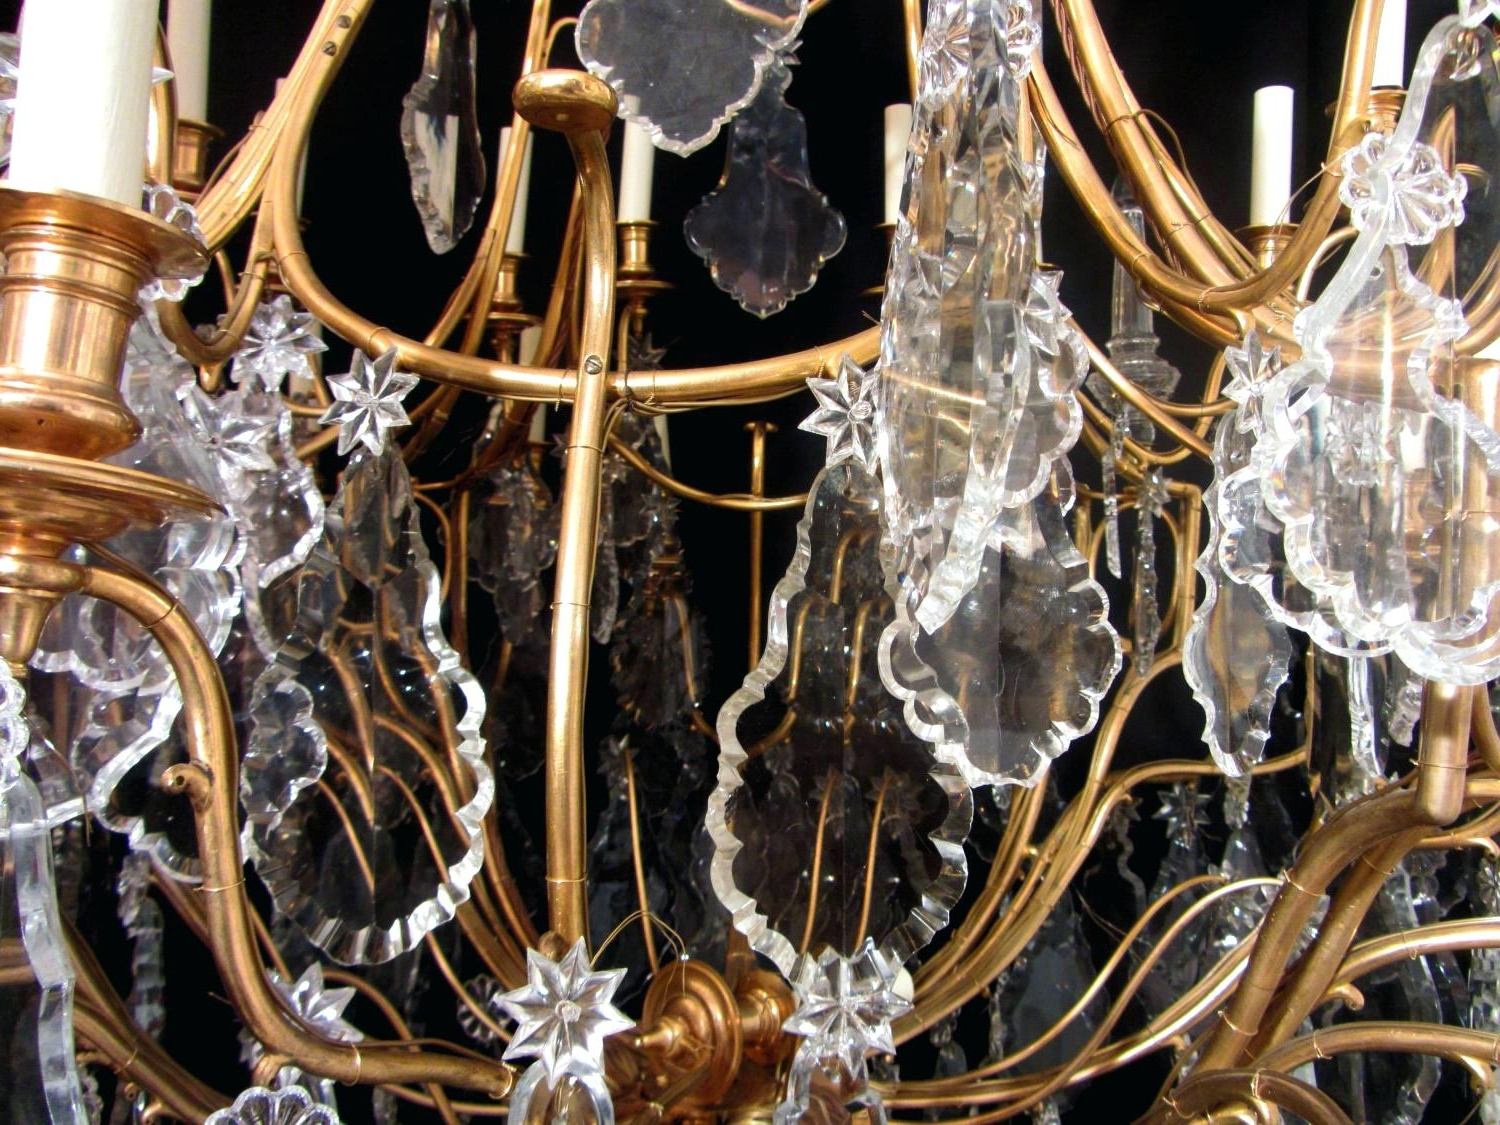 Large Bronze Chandelier Lrge Bccrt Chndelier Big Crystal Extra Intended For Recent Large Bronze Chandelier (View 8 of 20)